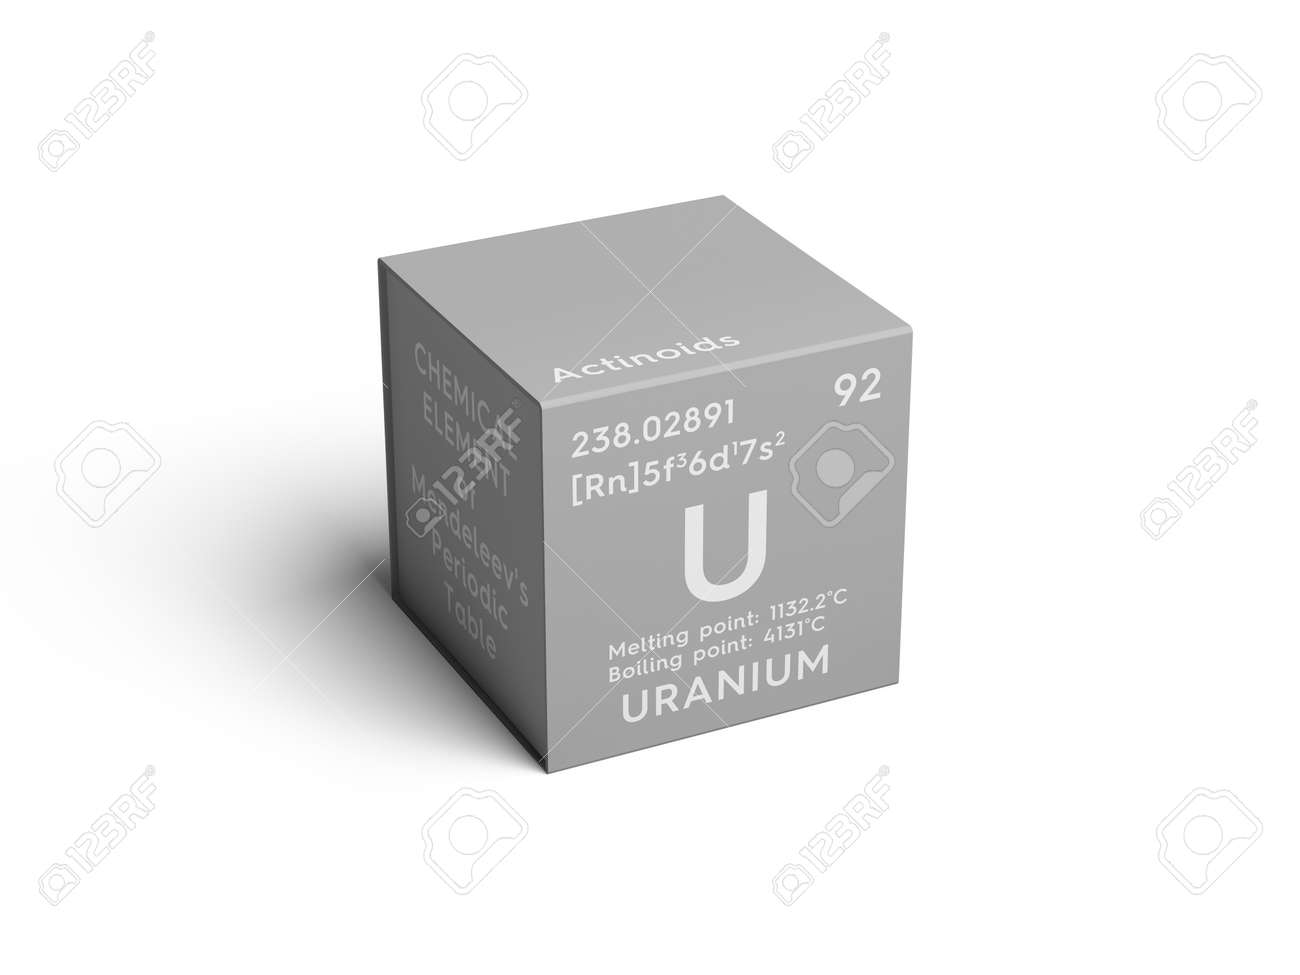 Uranium actinoids chemical element of mendeleevs periodic uranium actinoids chemical element of mendeleevs periodic table uranium in square cube creative gamestrikefo Image collections